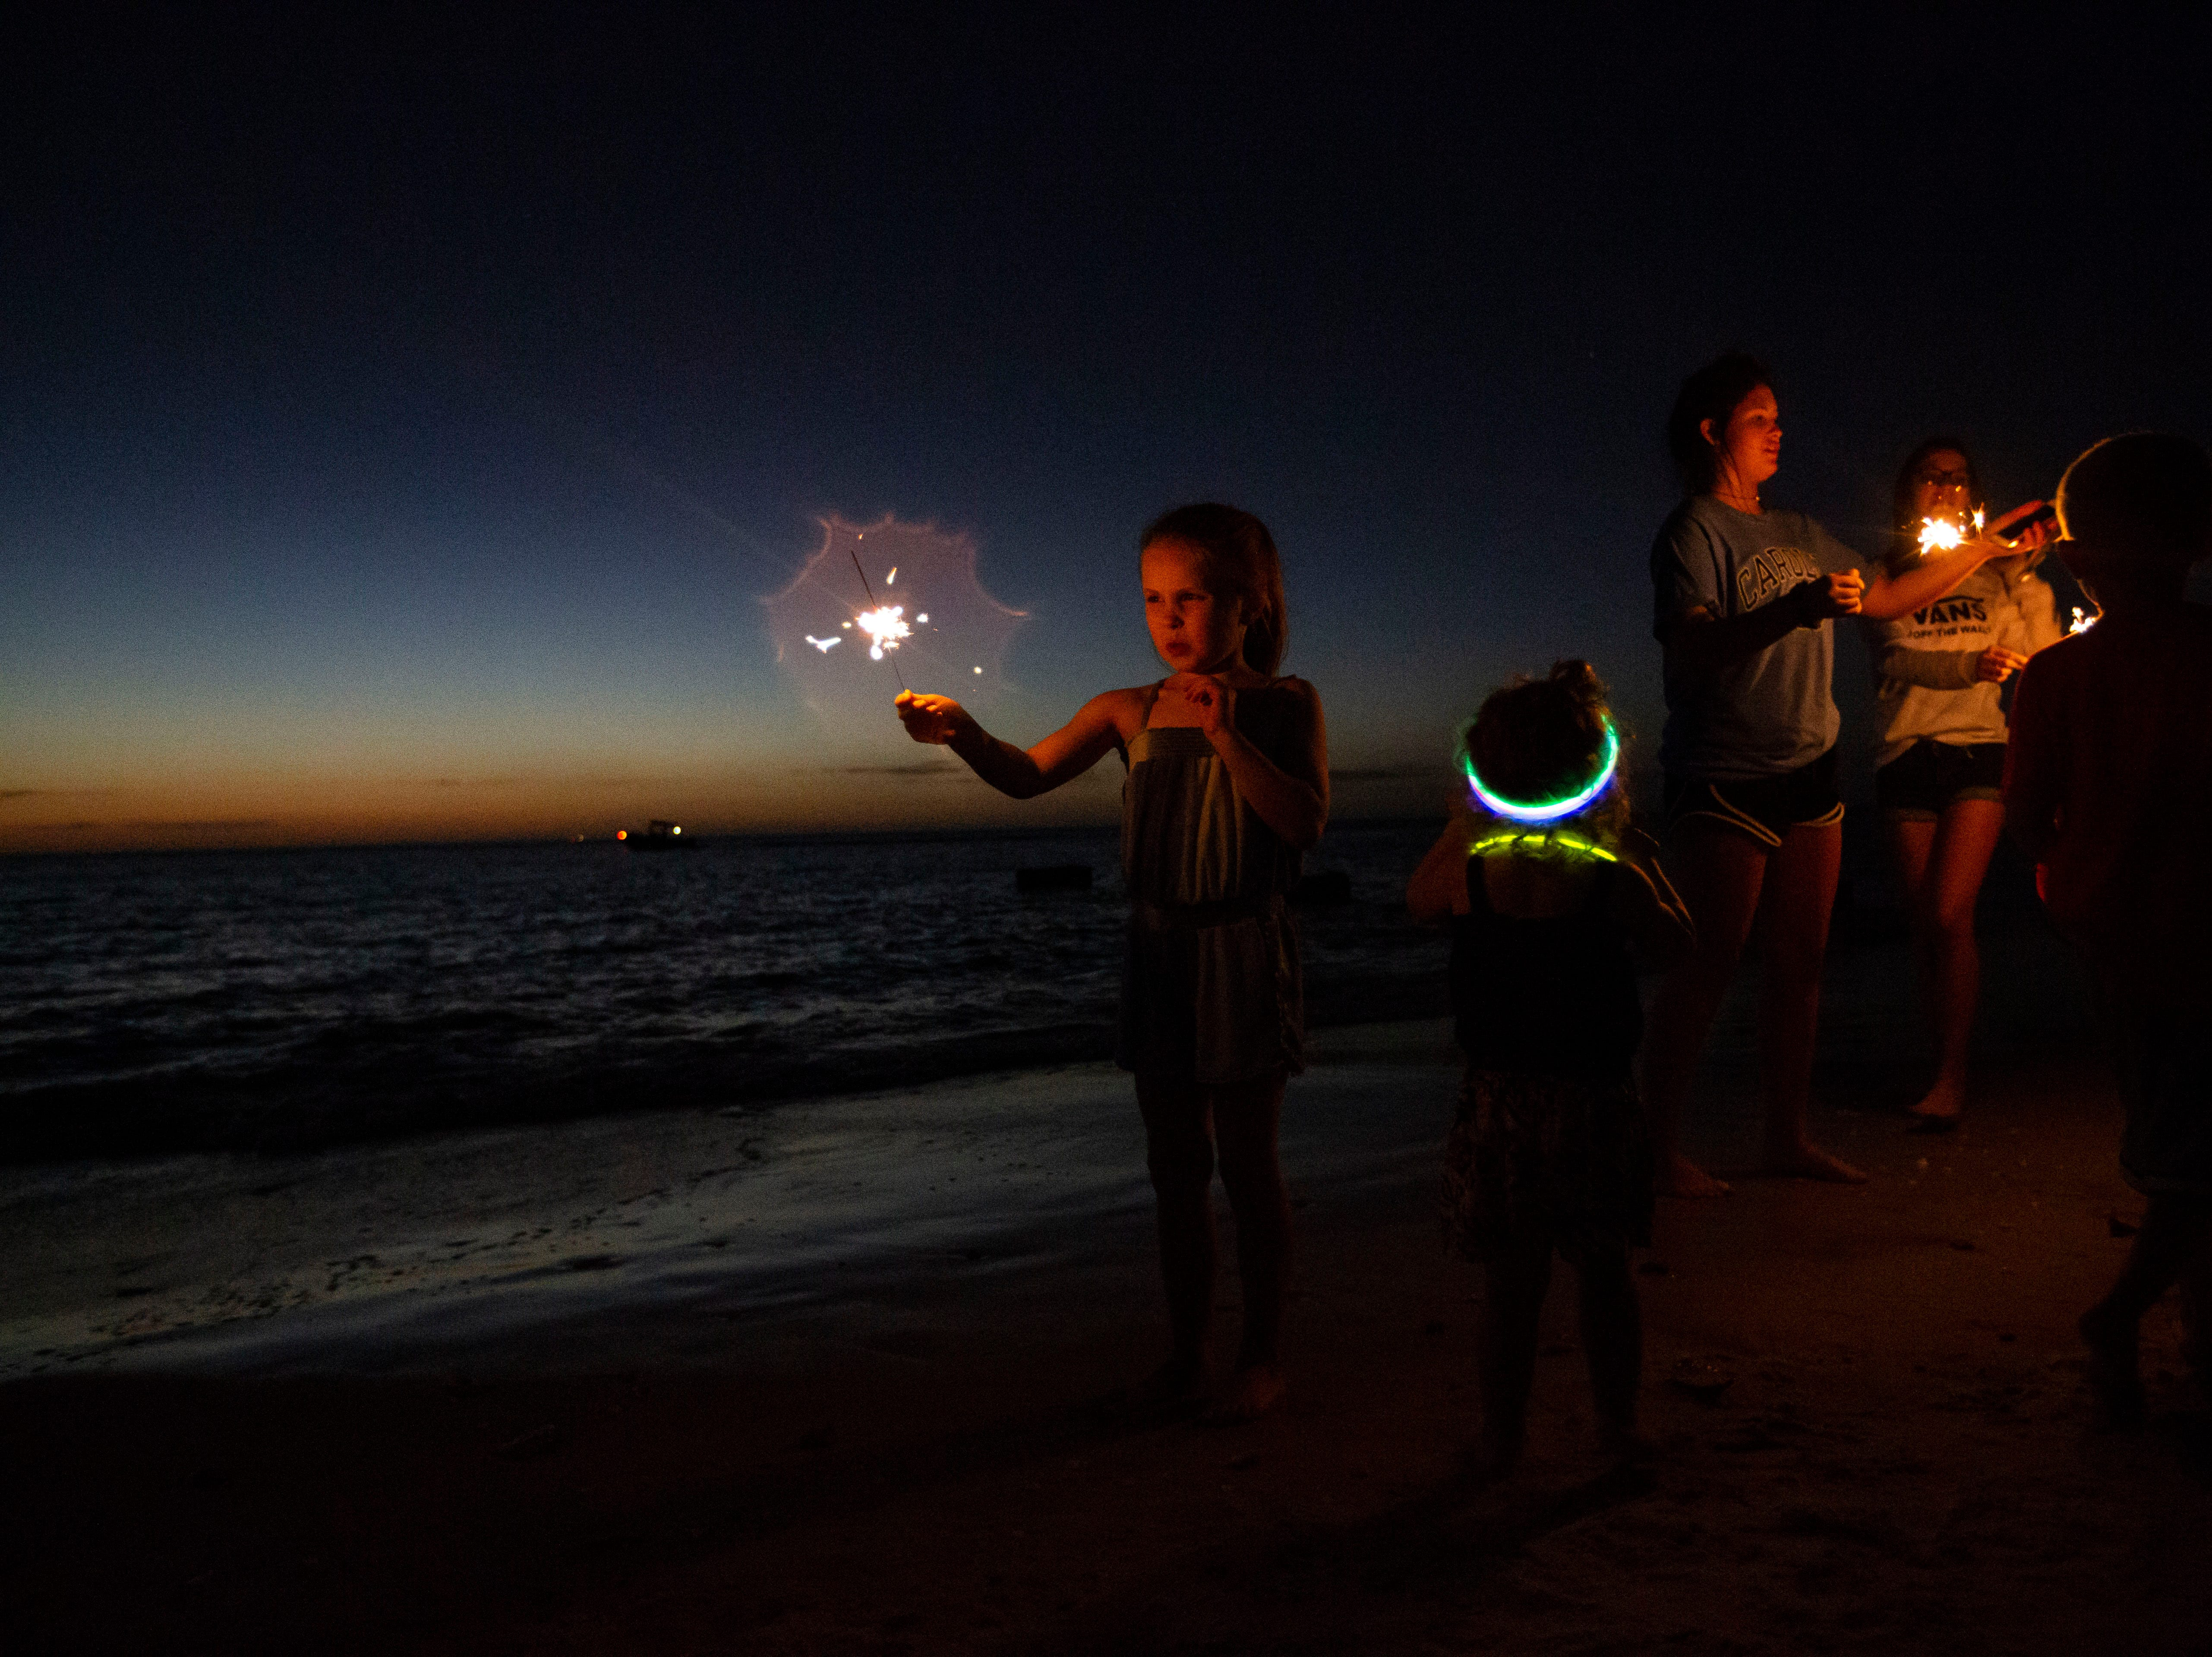 Marci Page, 6, reacts to her sparkler burning out on Monday, Dec. 31, 2018, at the Naples Pier beach, moments before the start of the annual New Year's Eve fireworks.